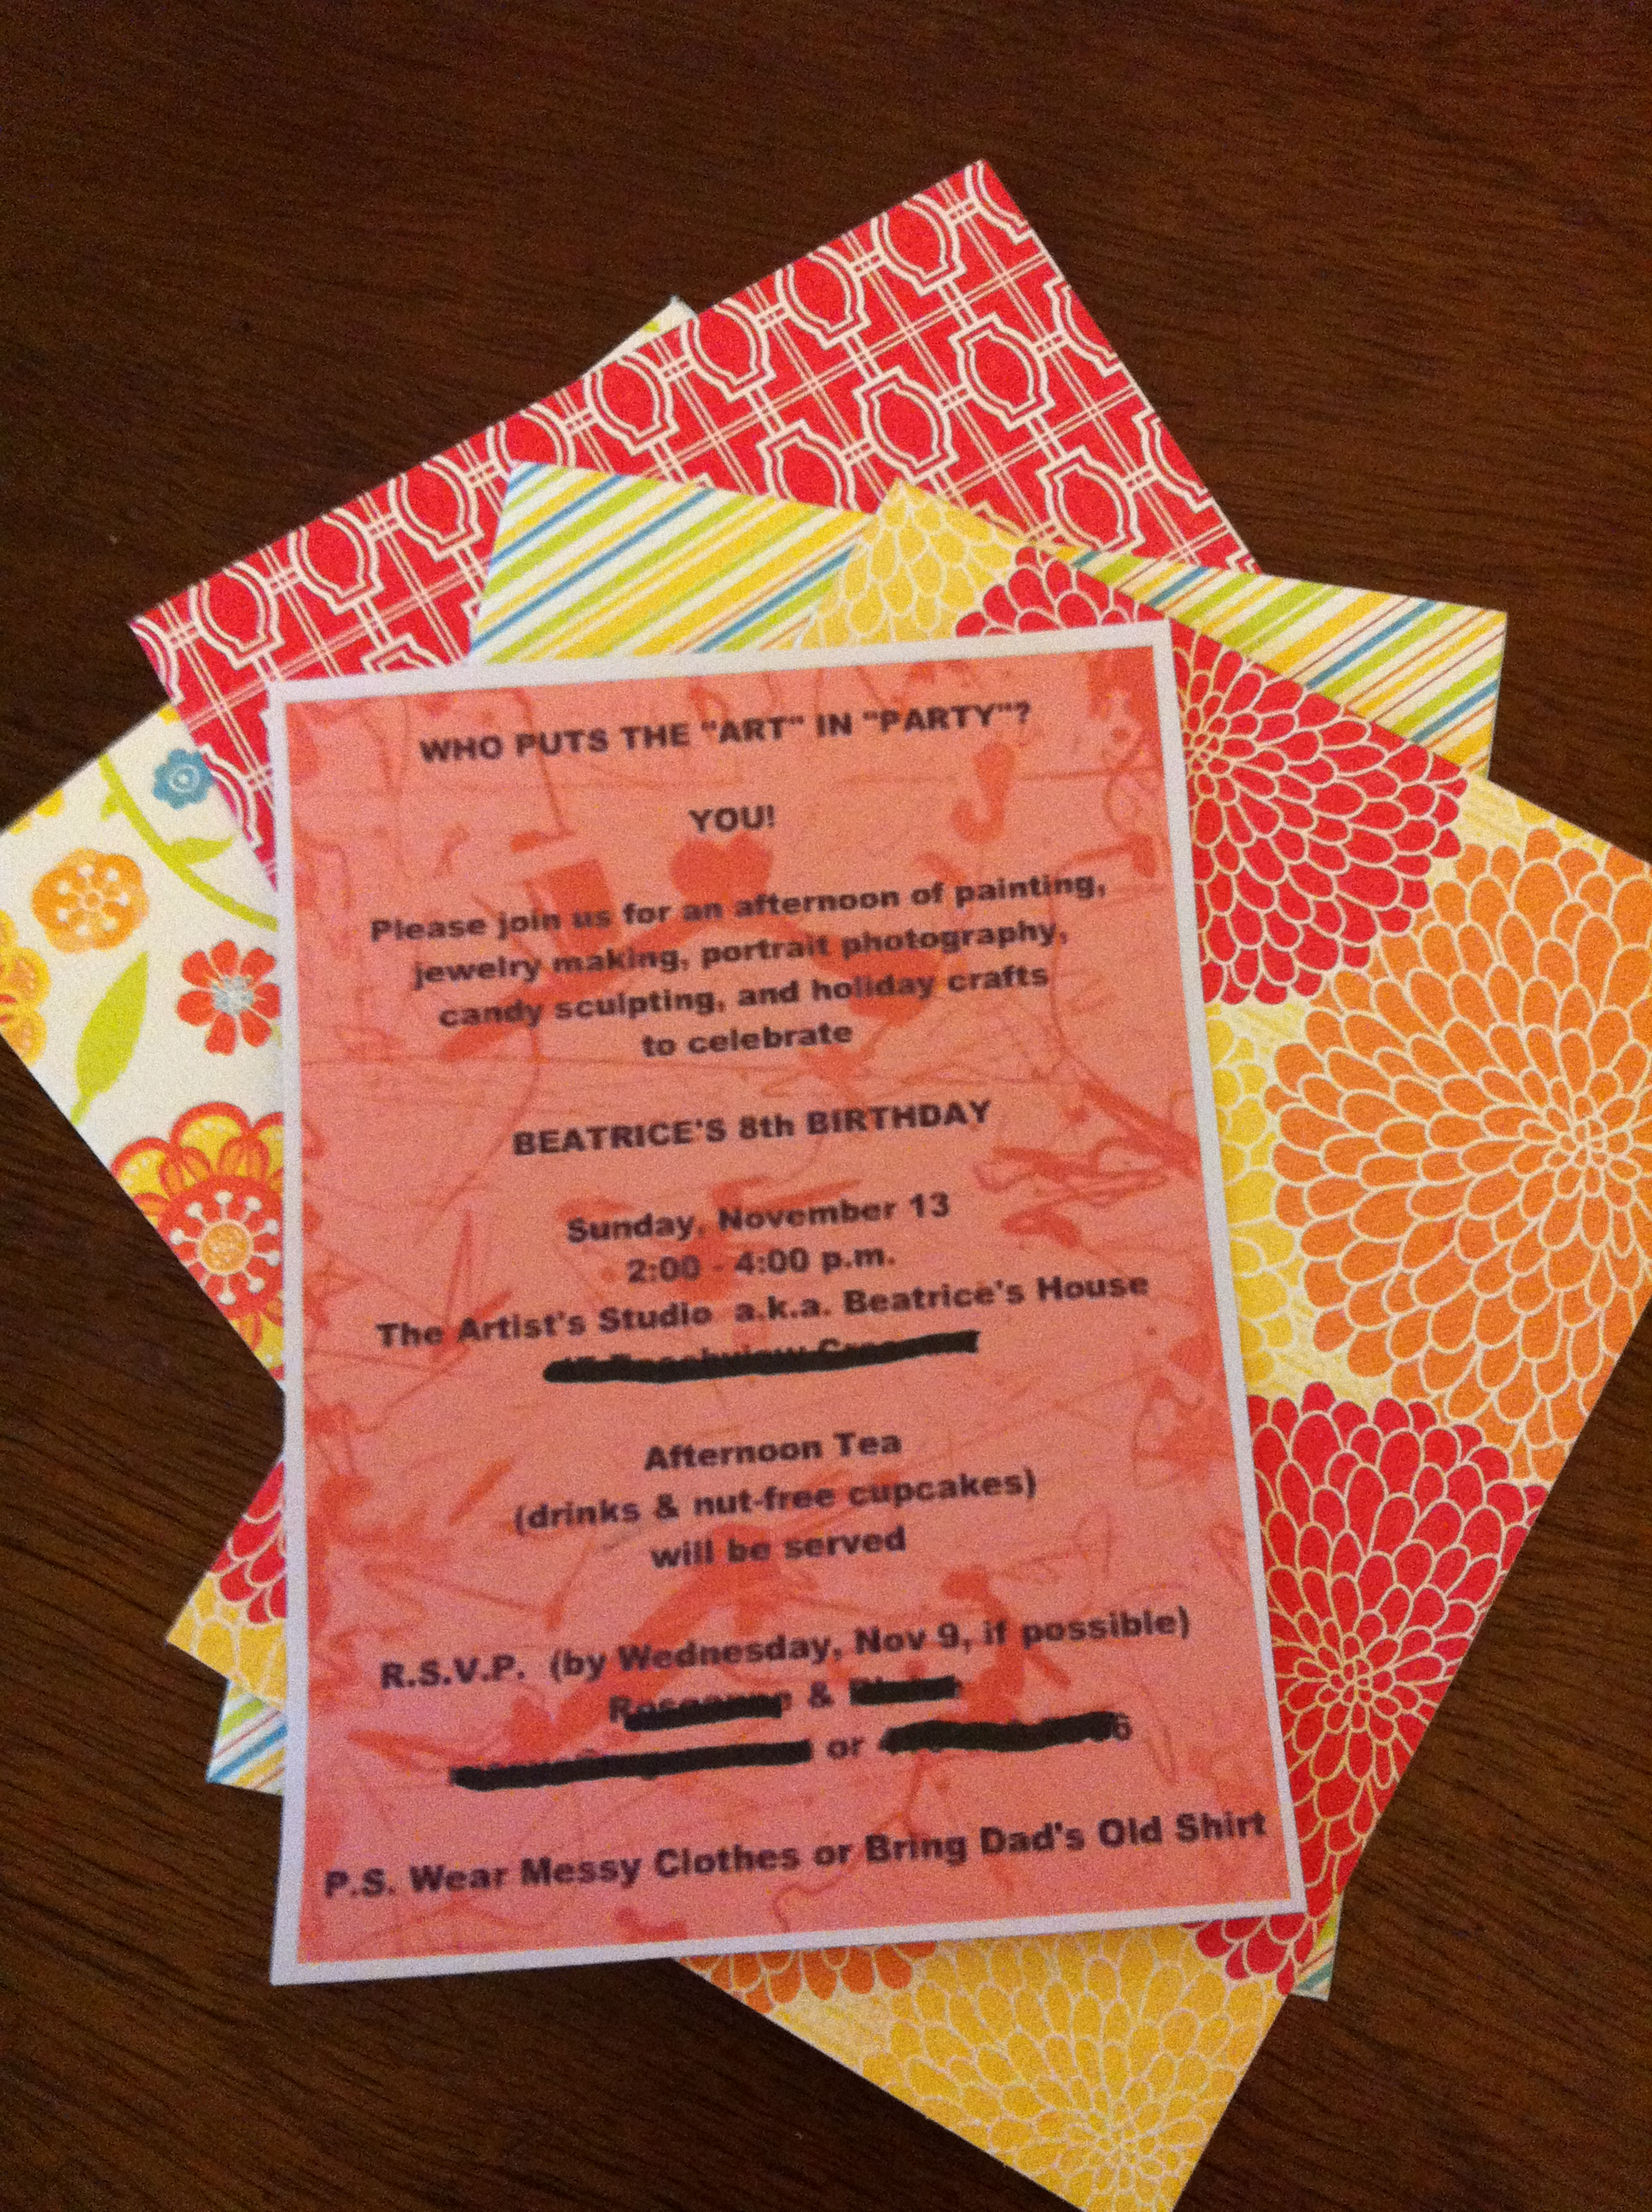 BIRTHDAY pARTy: Invitations and Ideas | THE LUNCHBOX SEASON